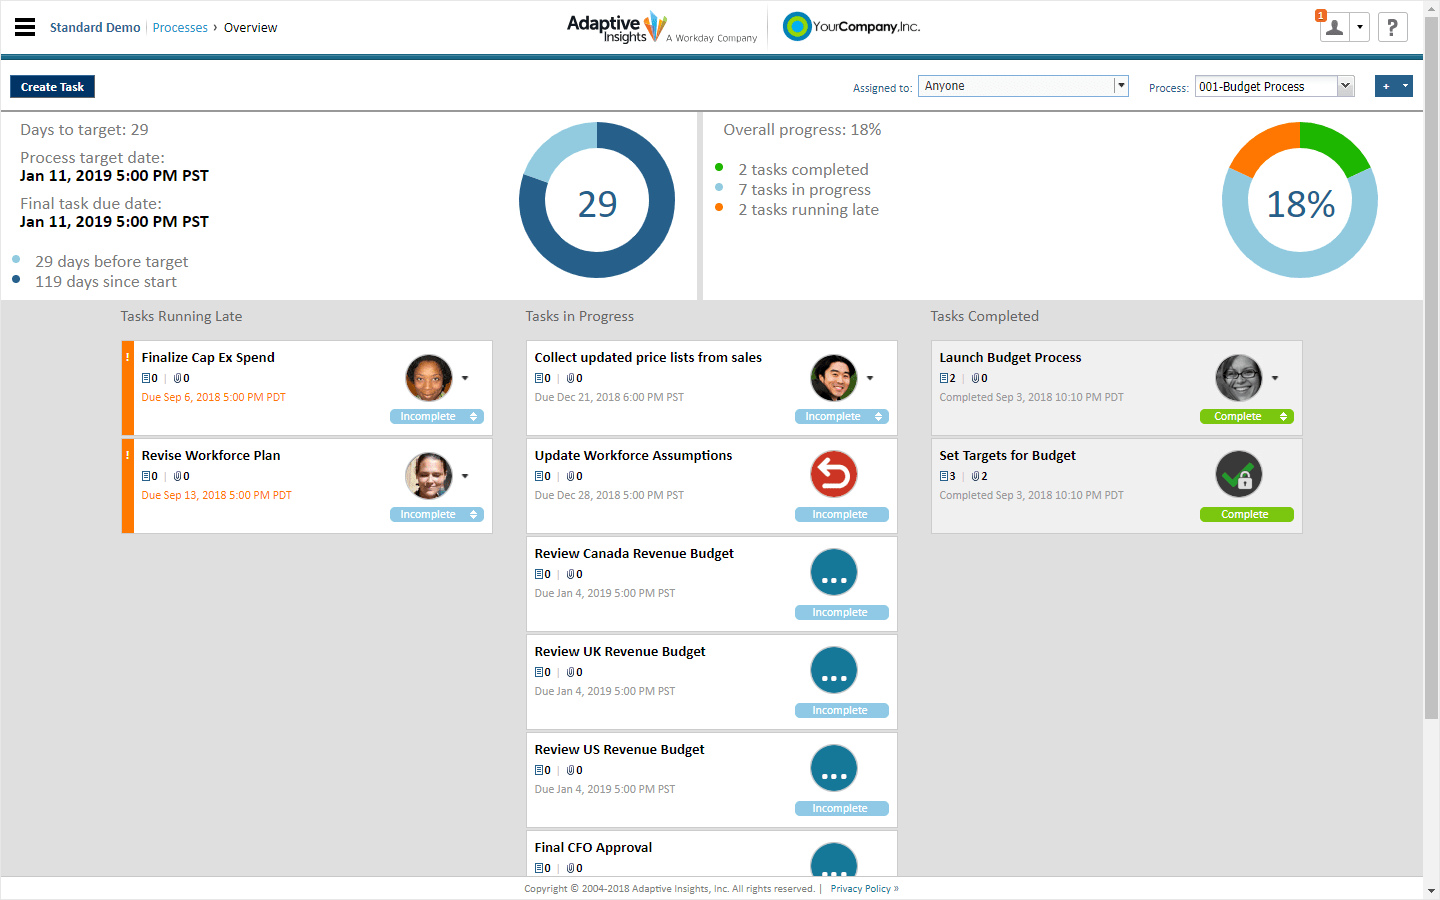 Adaptive Planning screenshot: Workday Adaptive Planning workforce planning